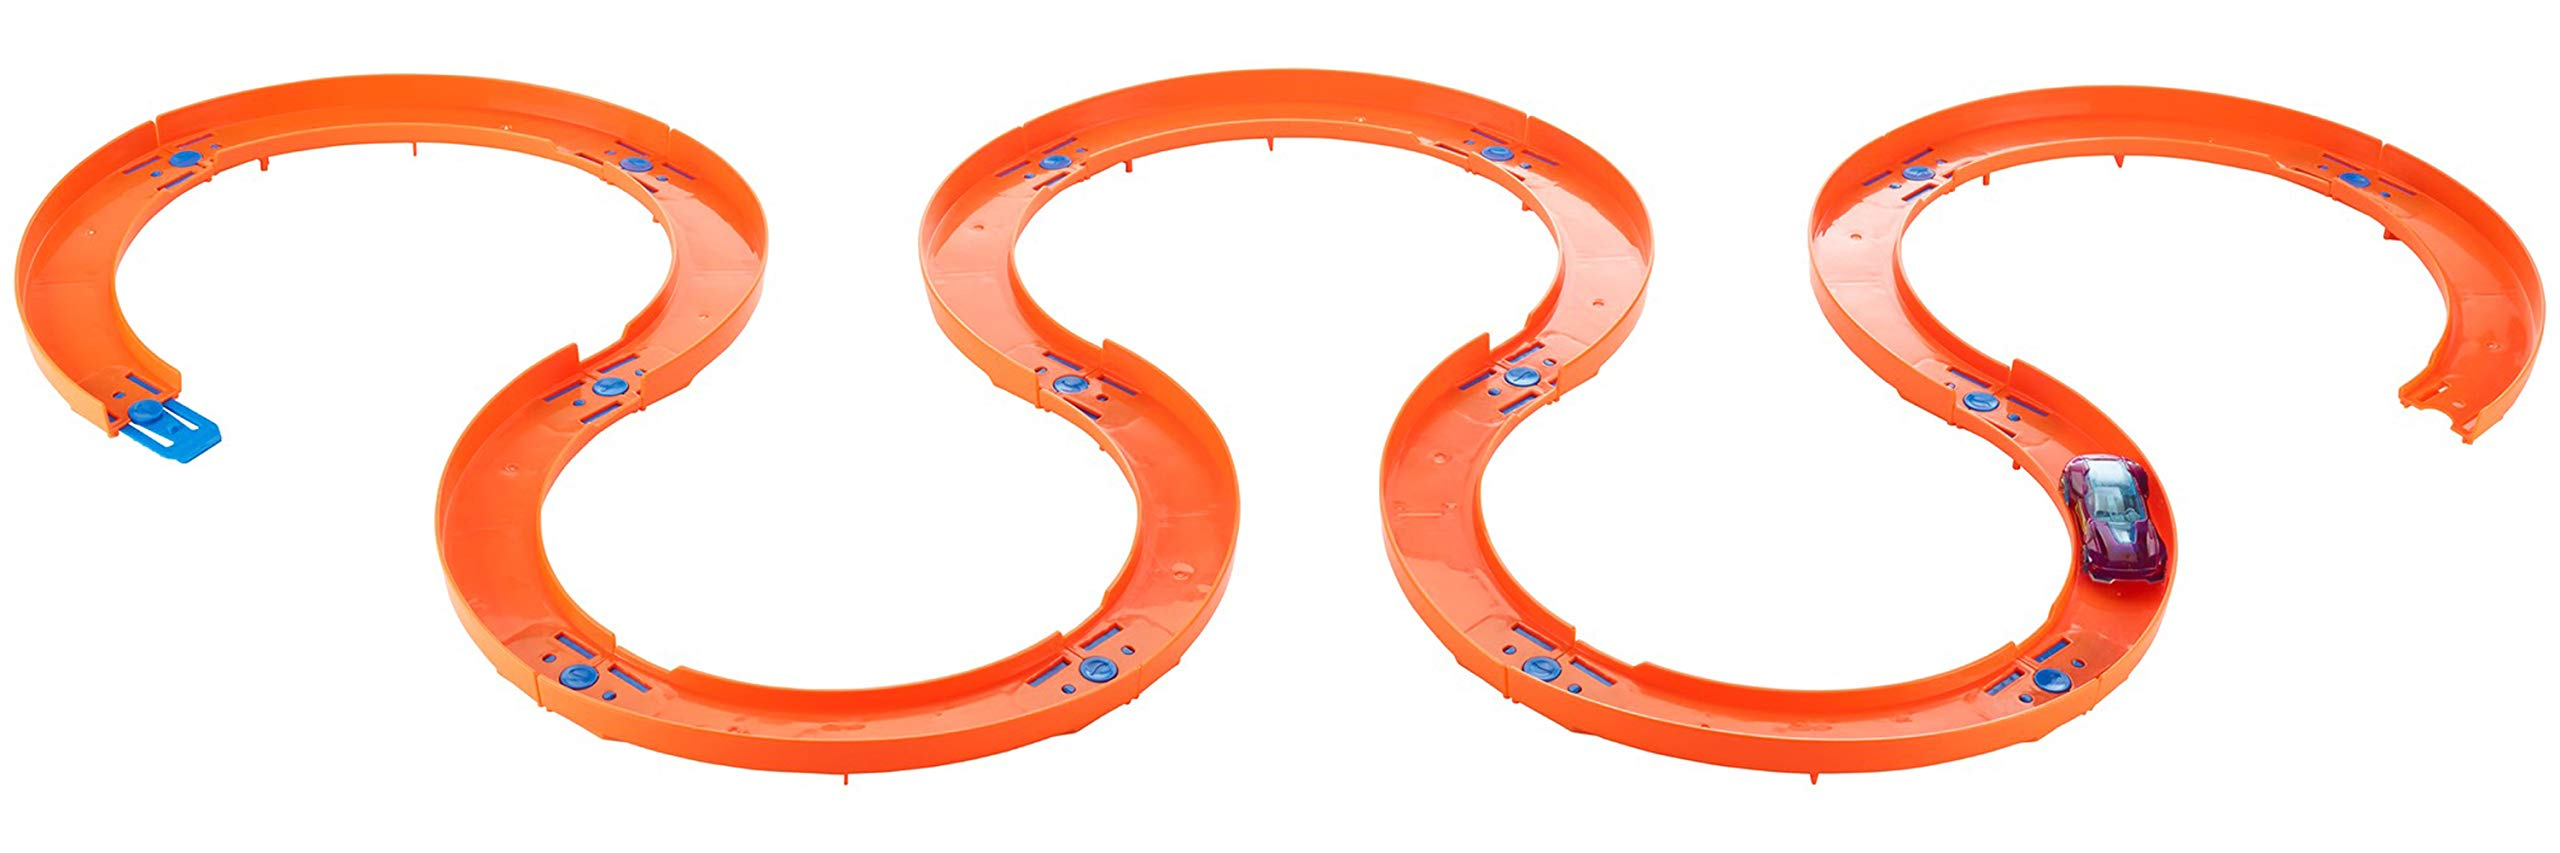 Hot Wheels Track Builder Curve Pack by Hot Wheels